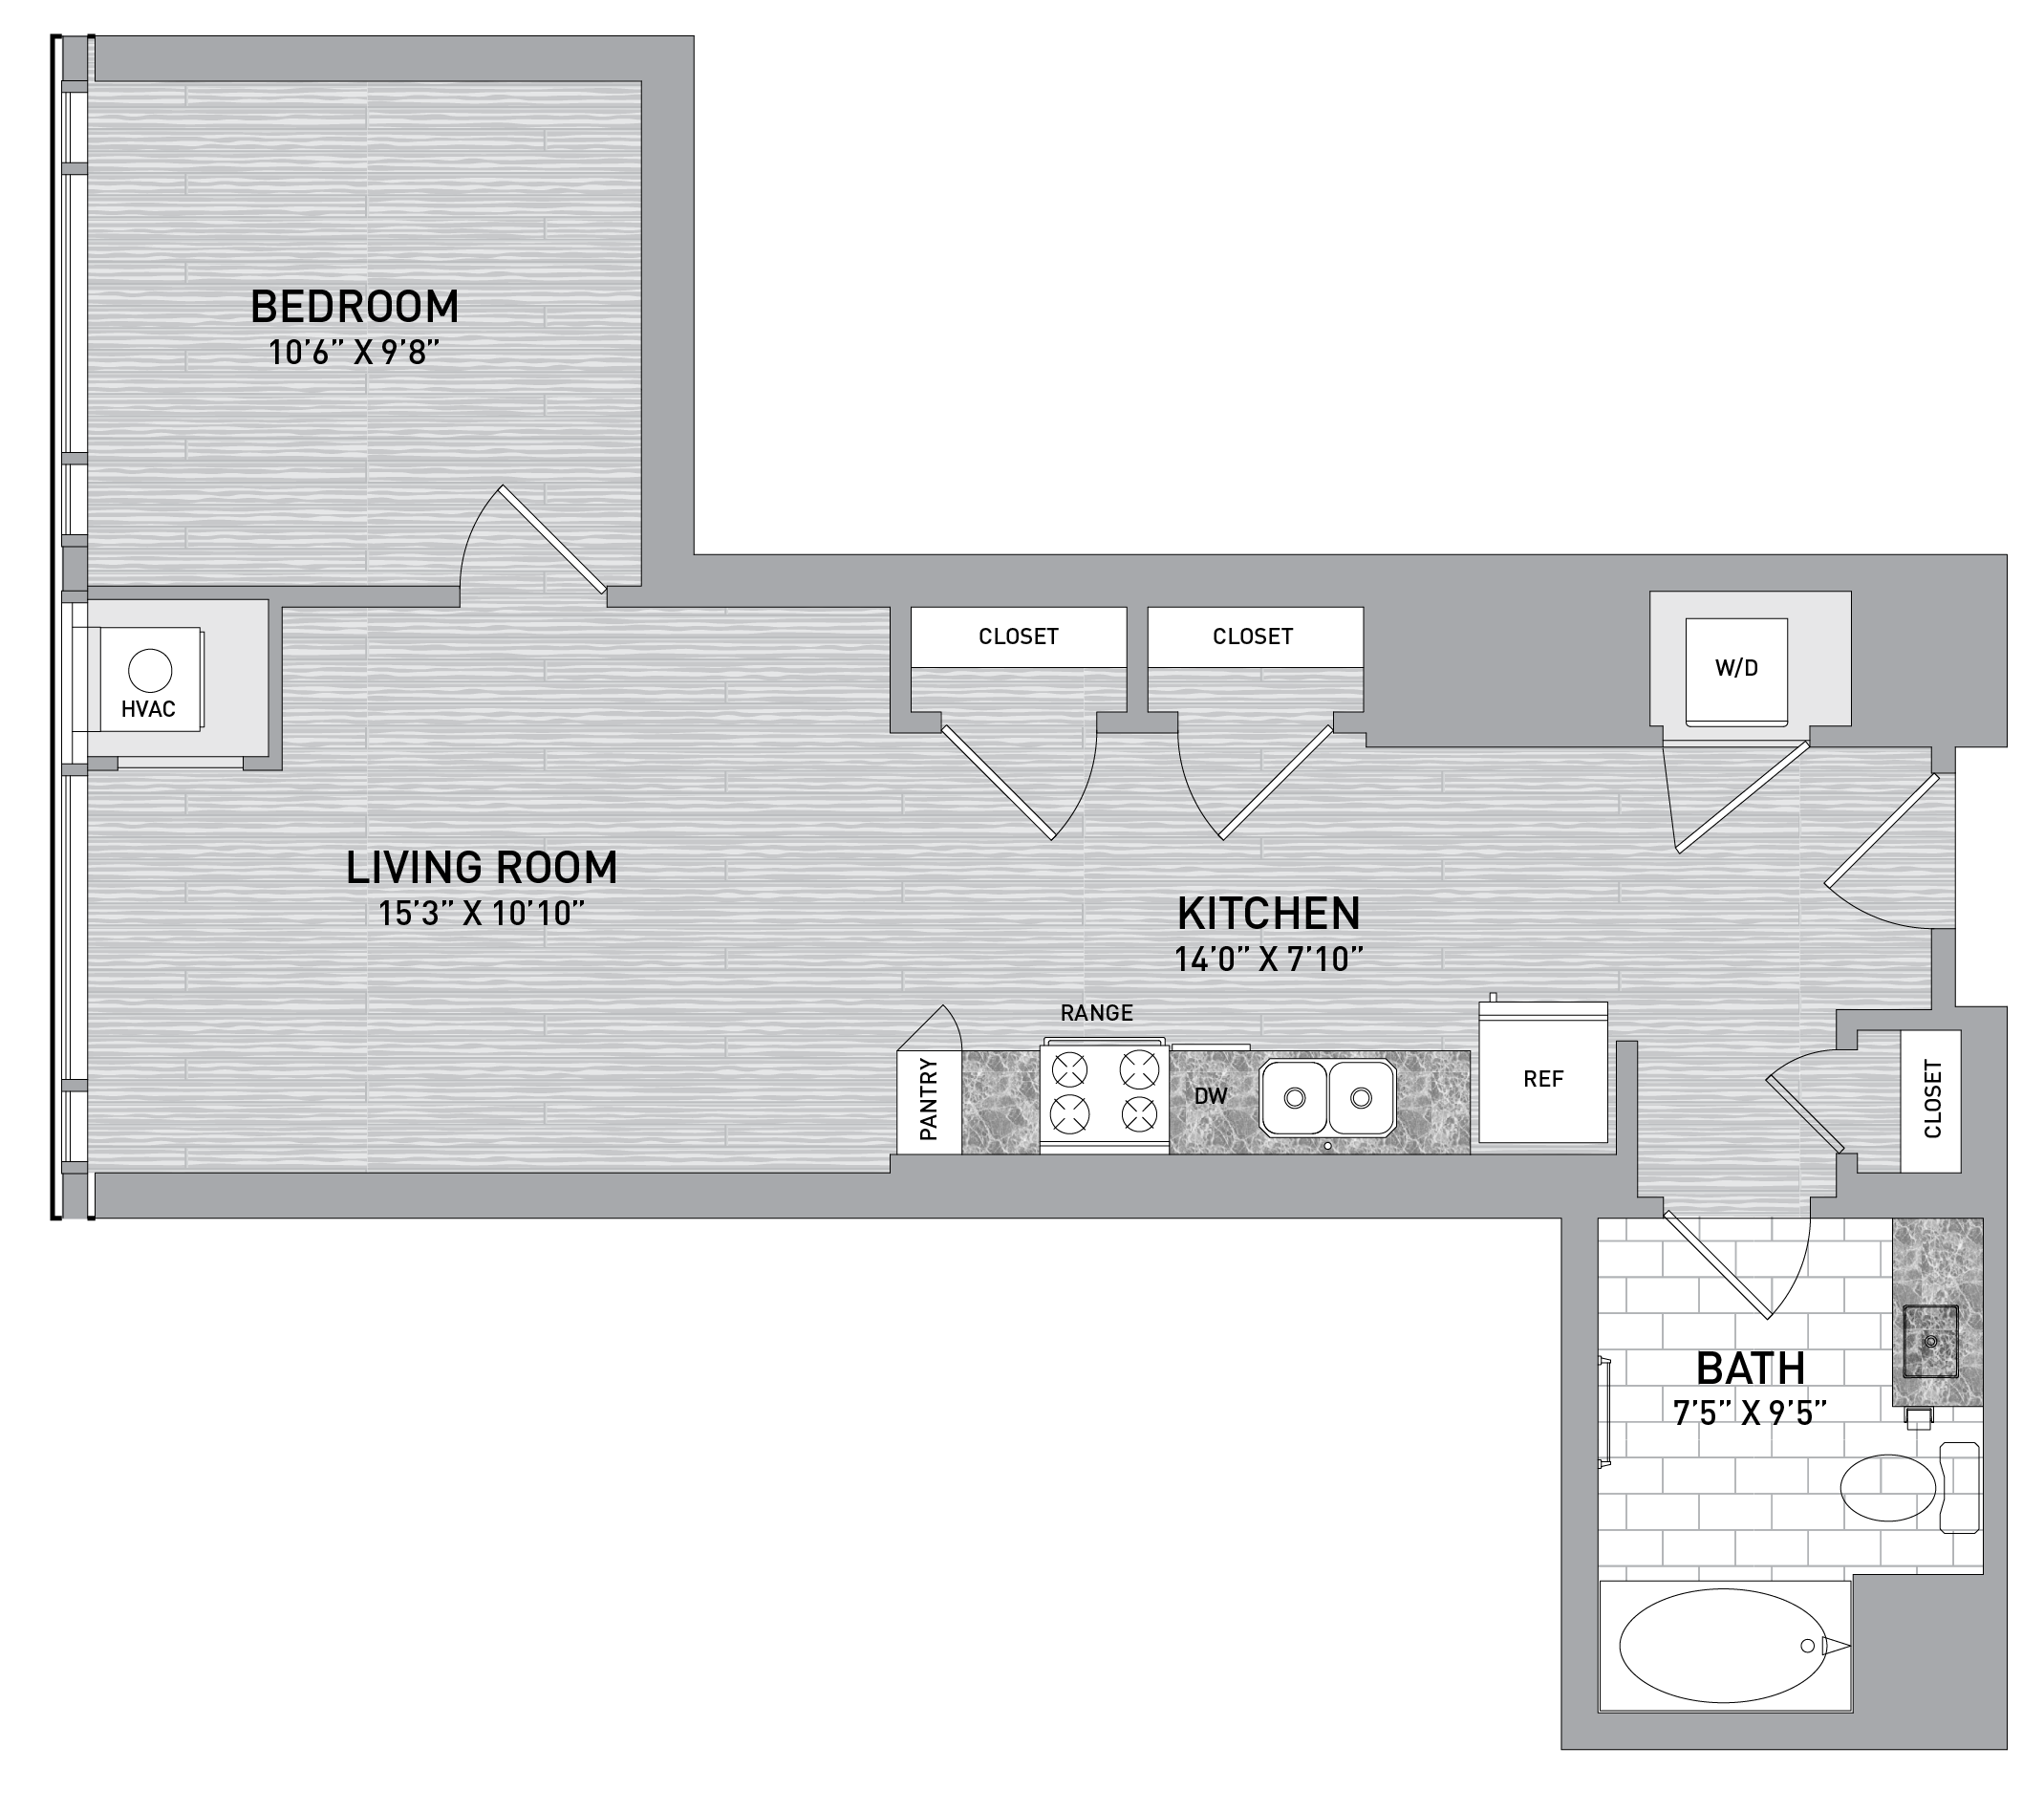 floorplan image of unit id 0430